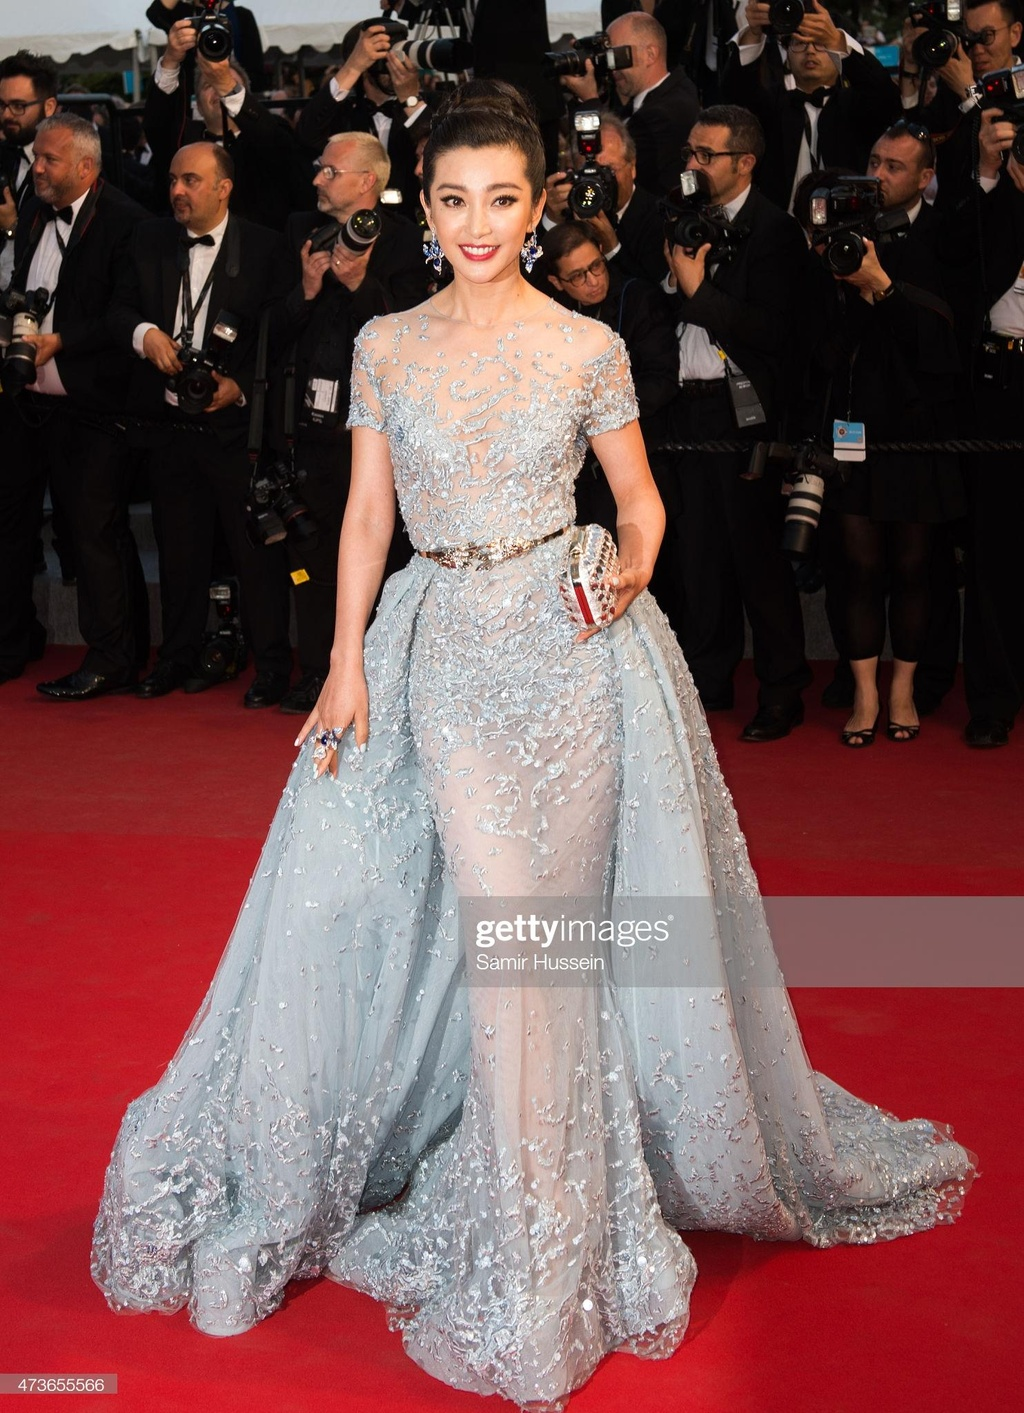 Lien hoan phim Cannes 2019 anh 5